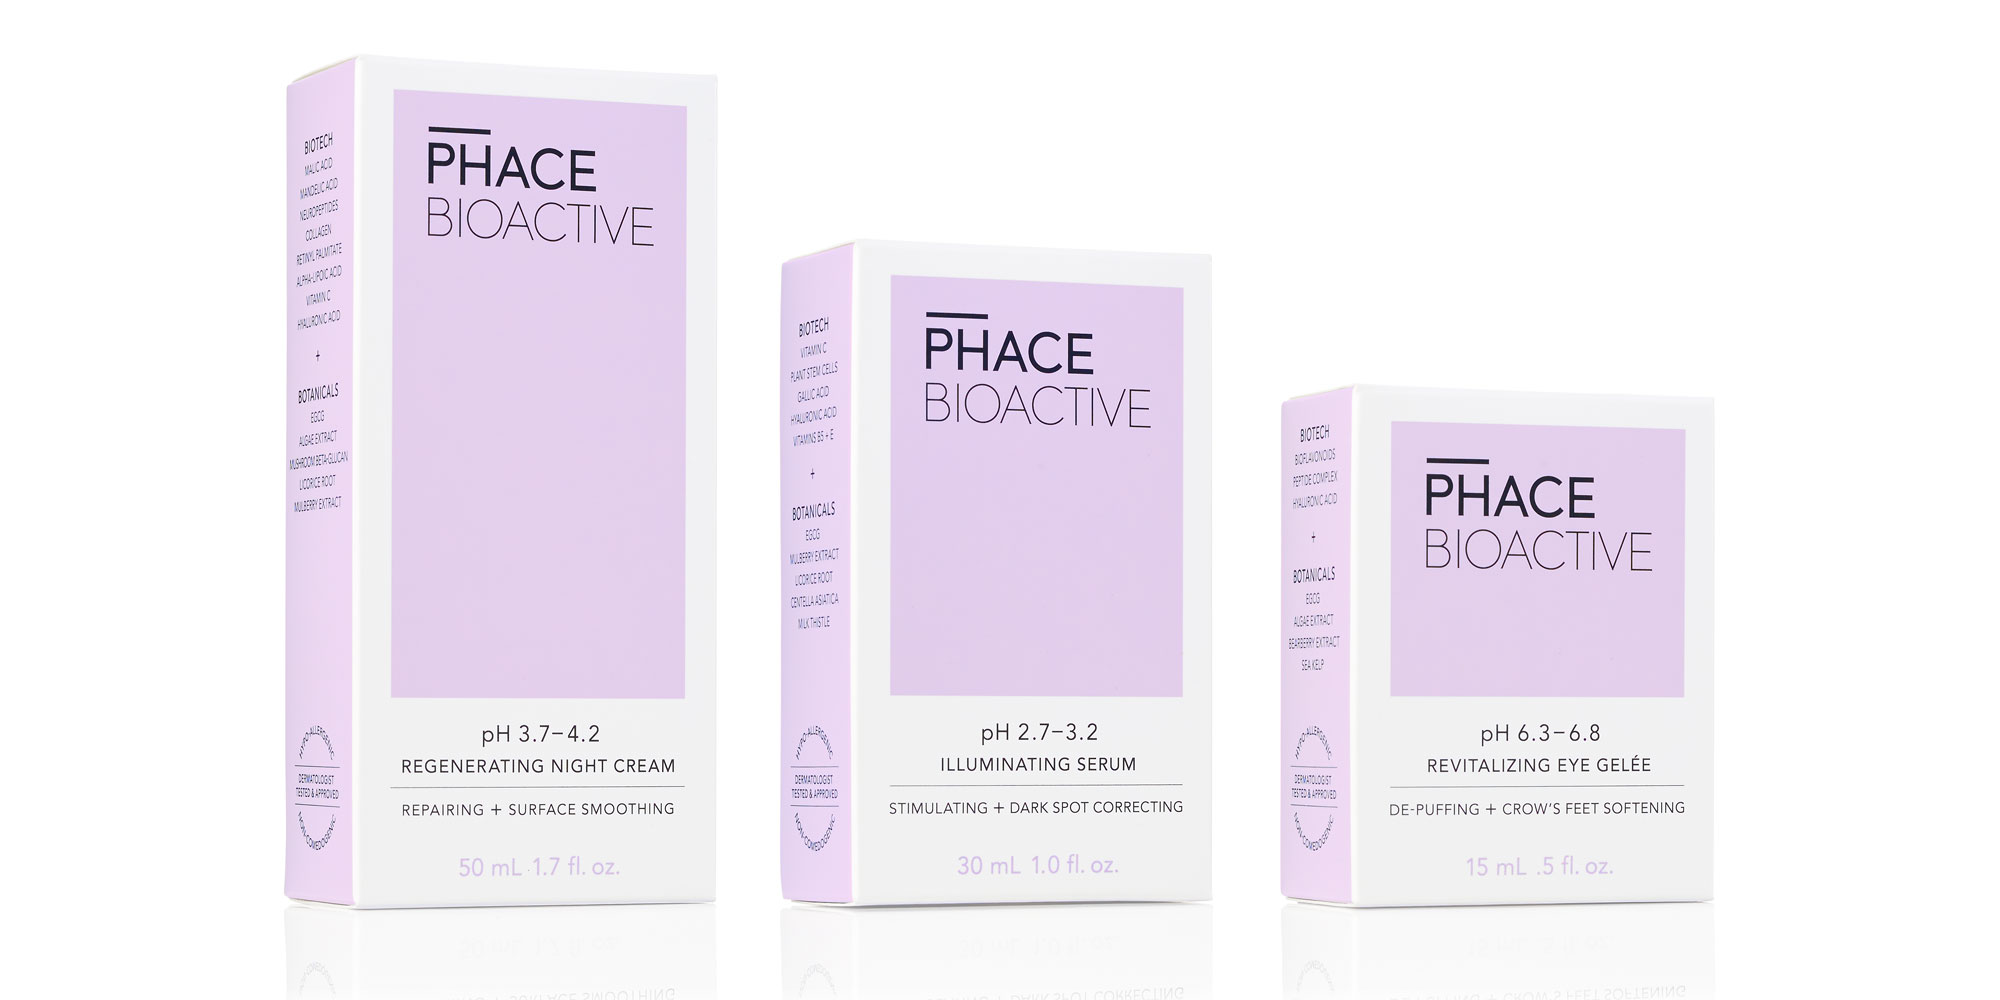 Phace Bioactive Secondary 3 Boxes